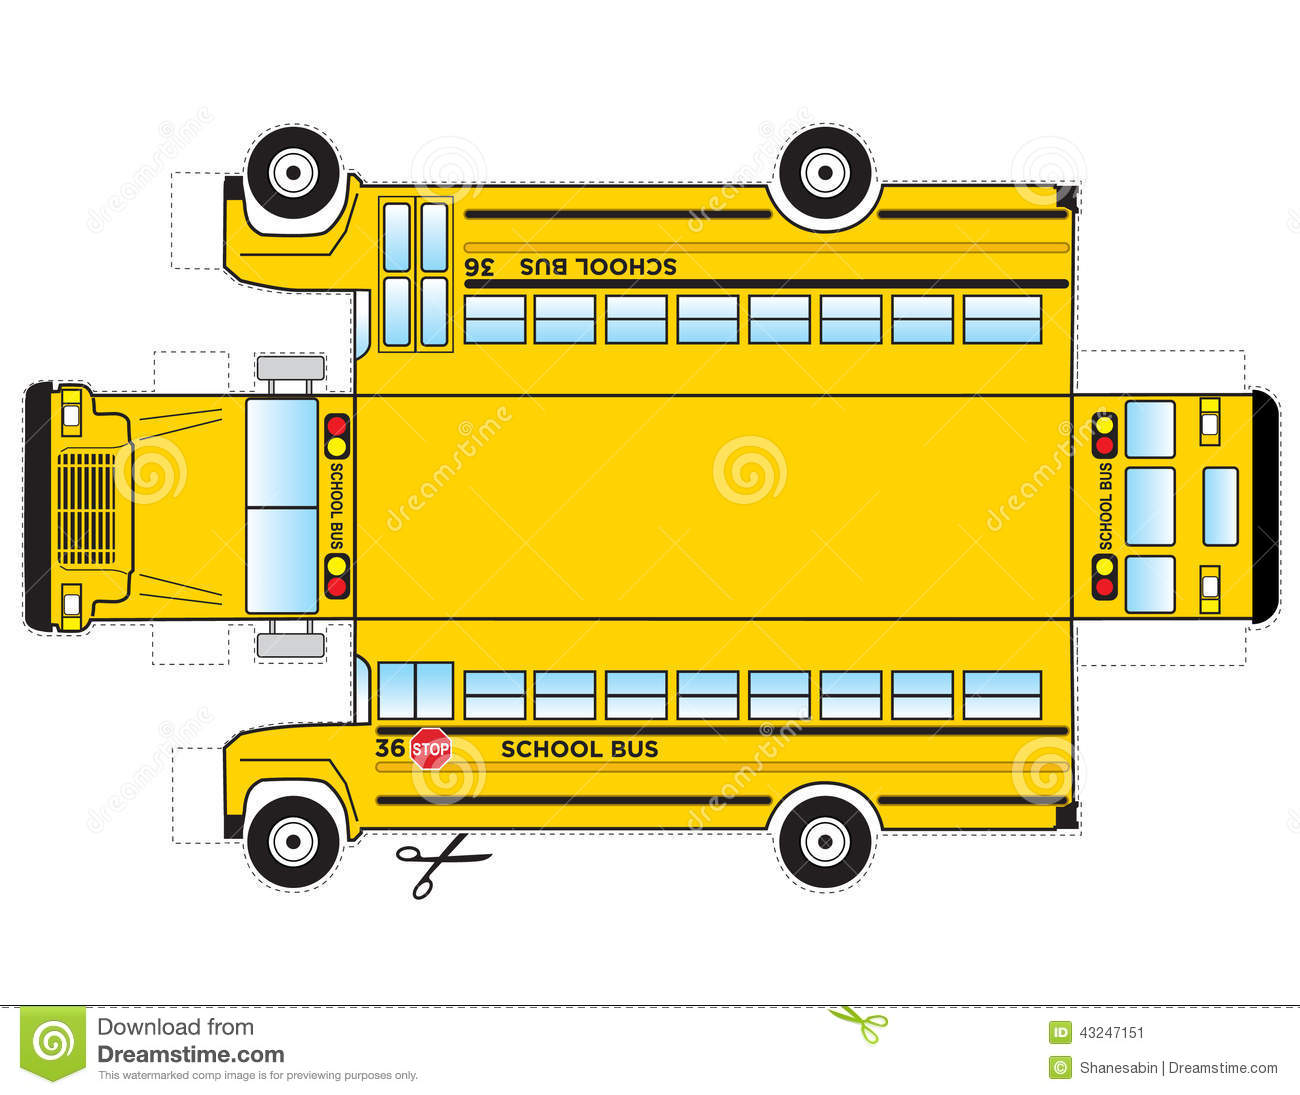 This is a school bus that can be cut out and glued/taped to become a 3 ...